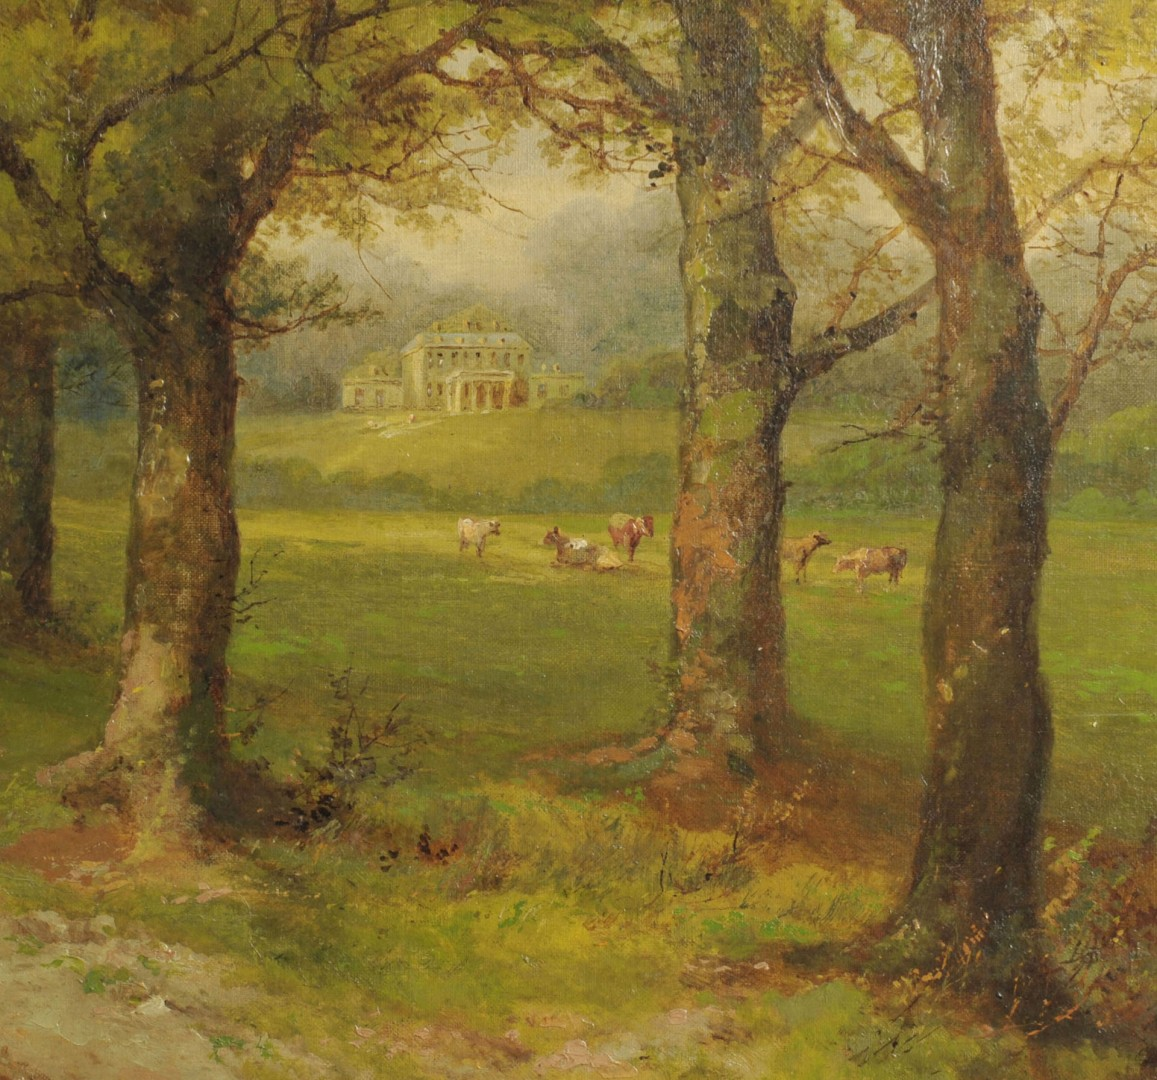 John Holding, 19th c. oil on canvas landscape